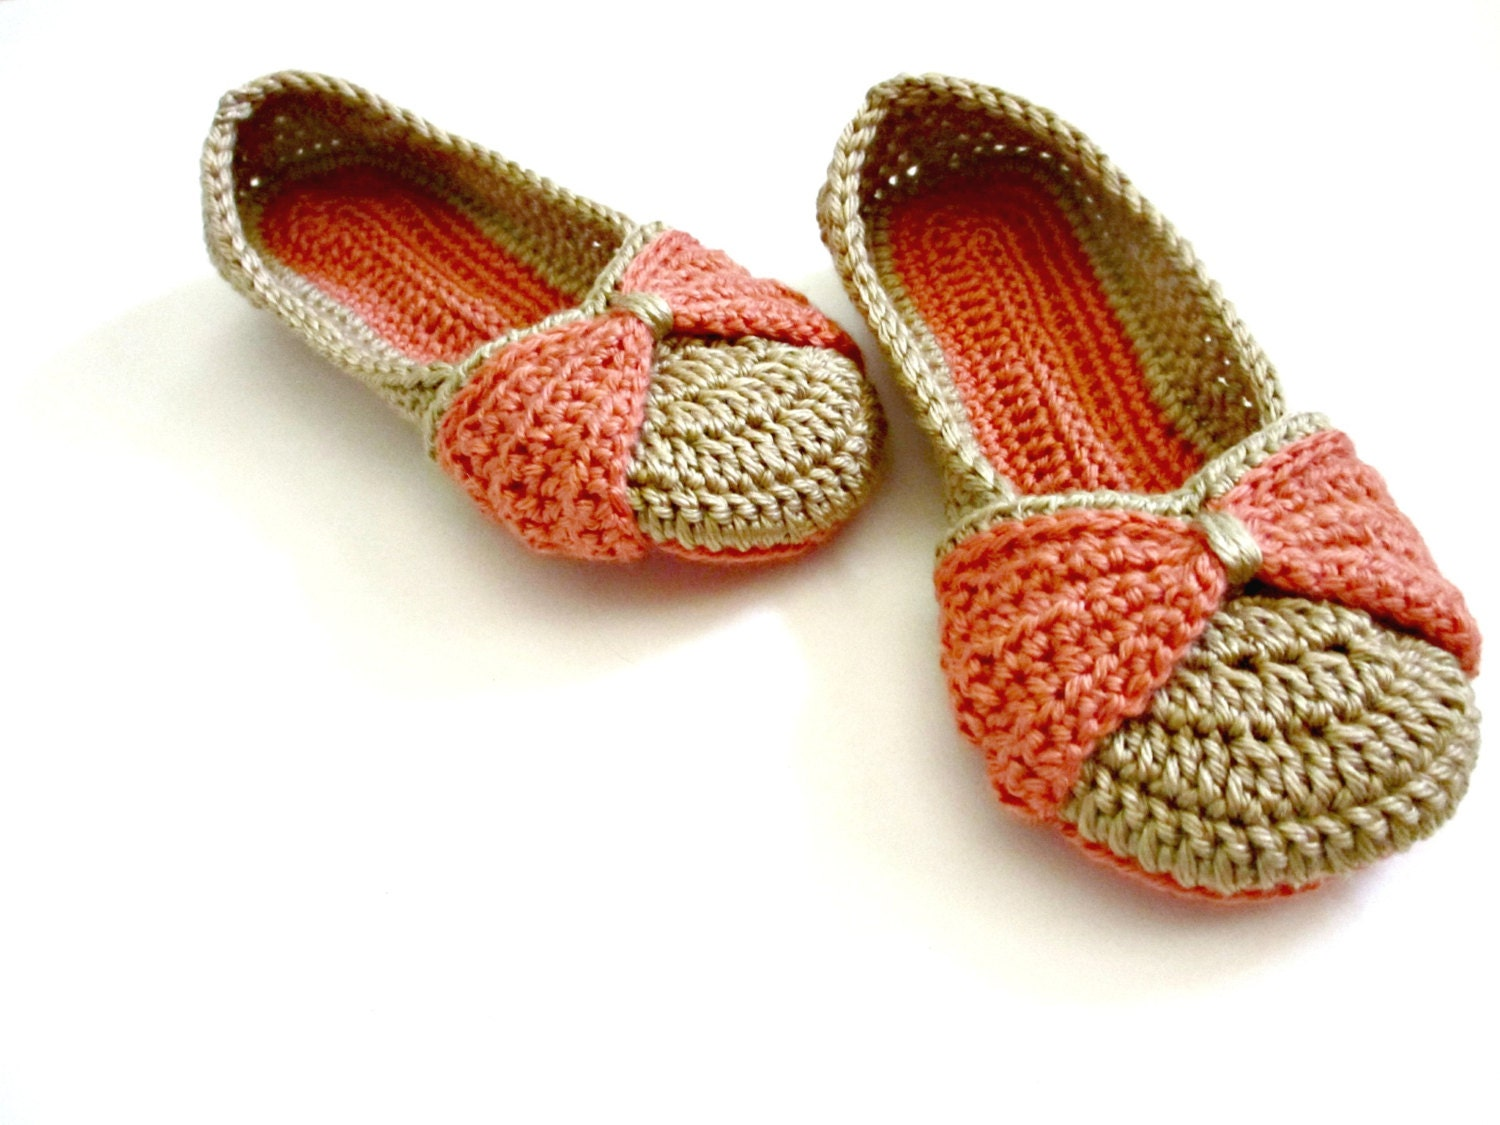 Crochet Slippers : Womens Slippers Bow Slippers Double sole crocheted by ...